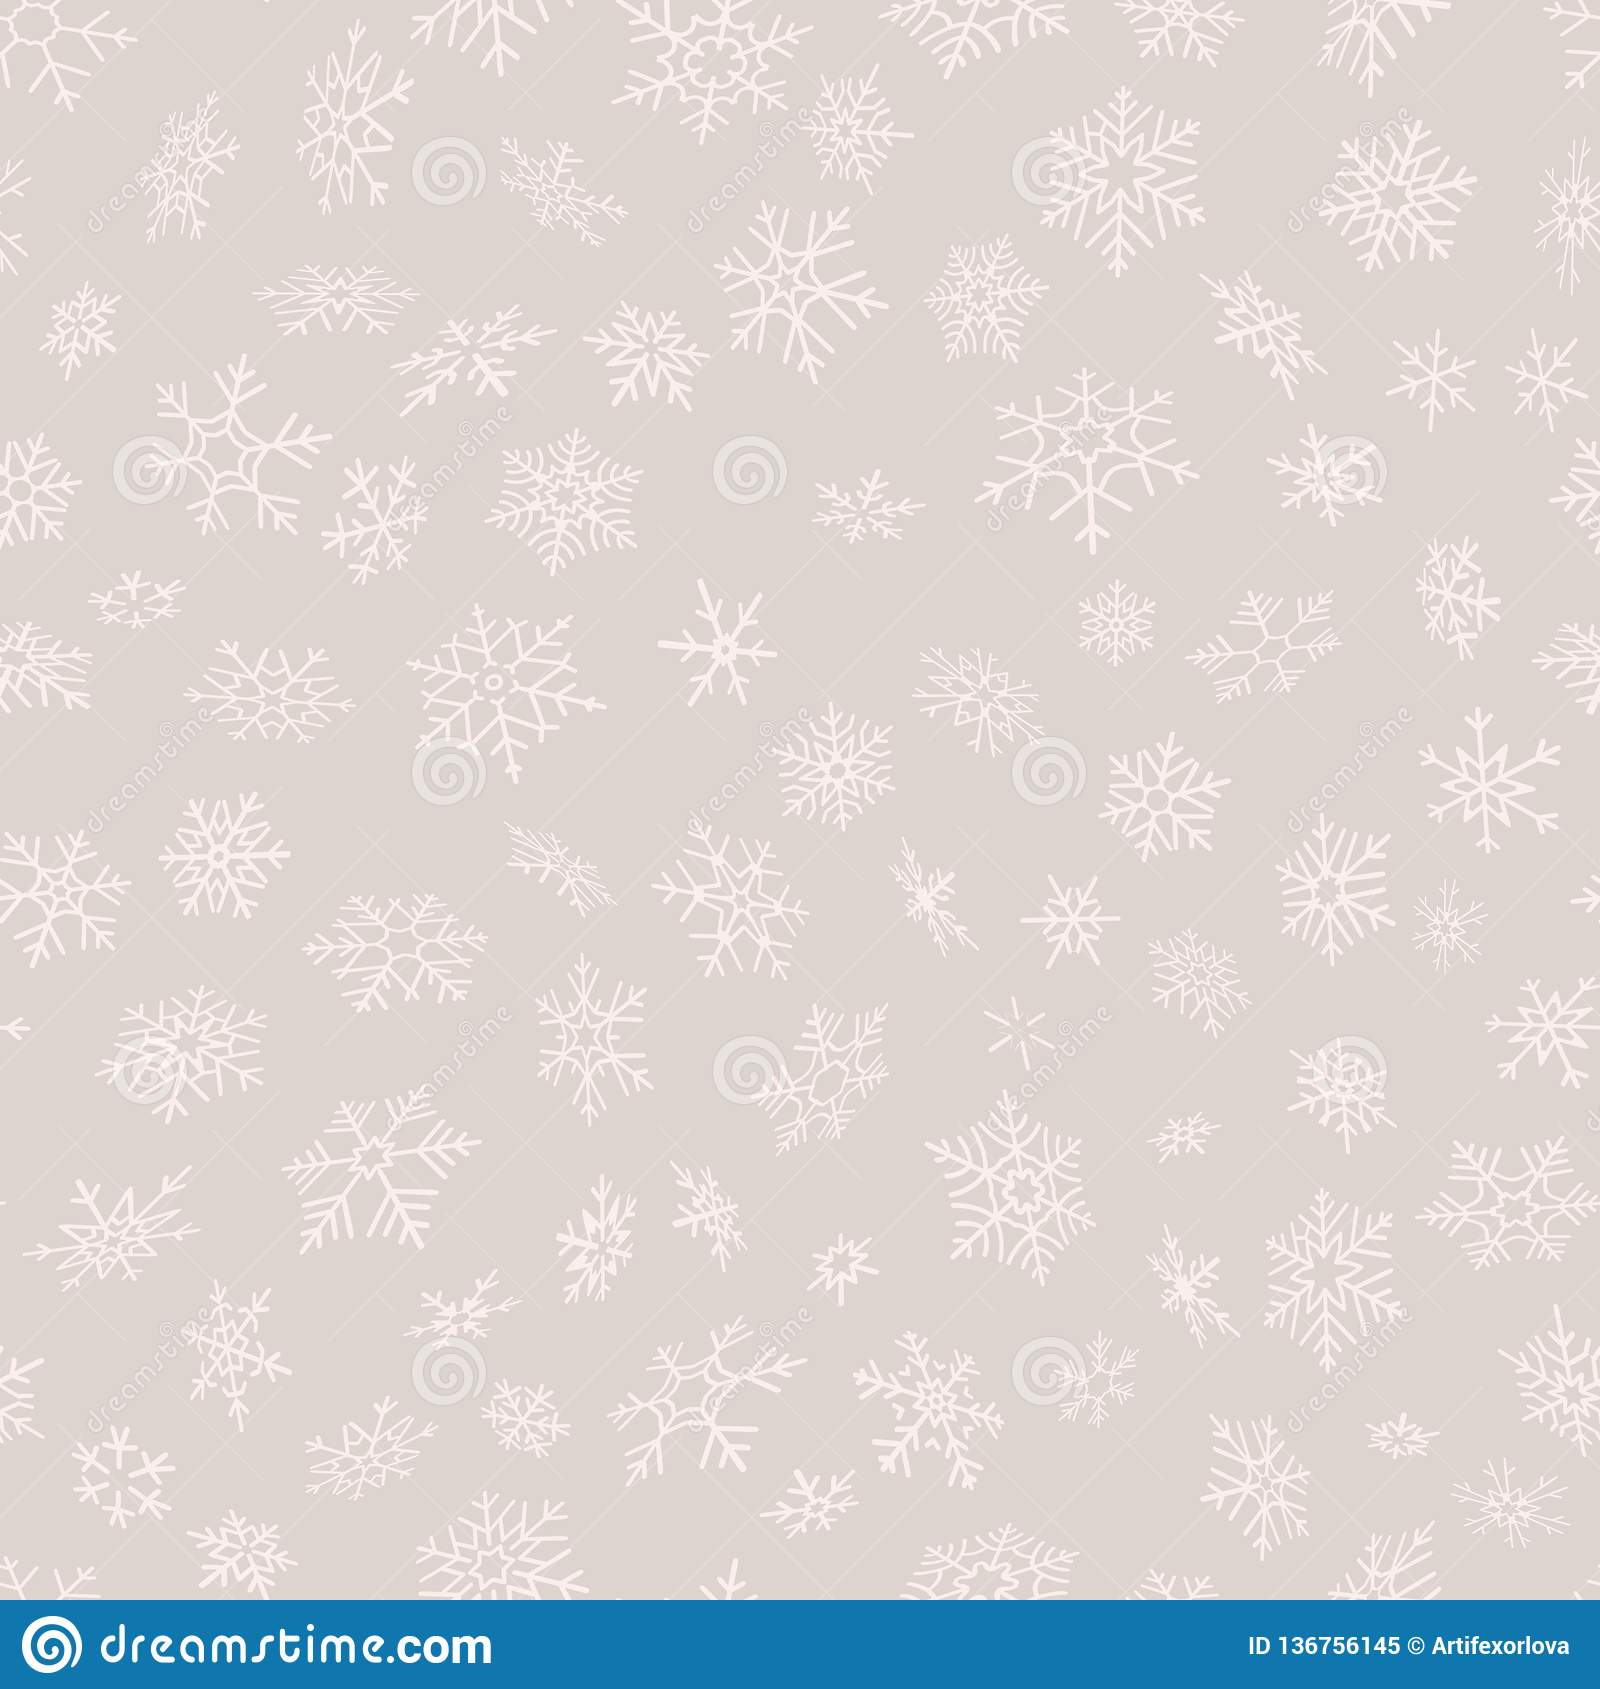 Merry Christmas and Happy New Year seamless snowflakes pattern. Perfect for wrapping paper or textile. EPS 10